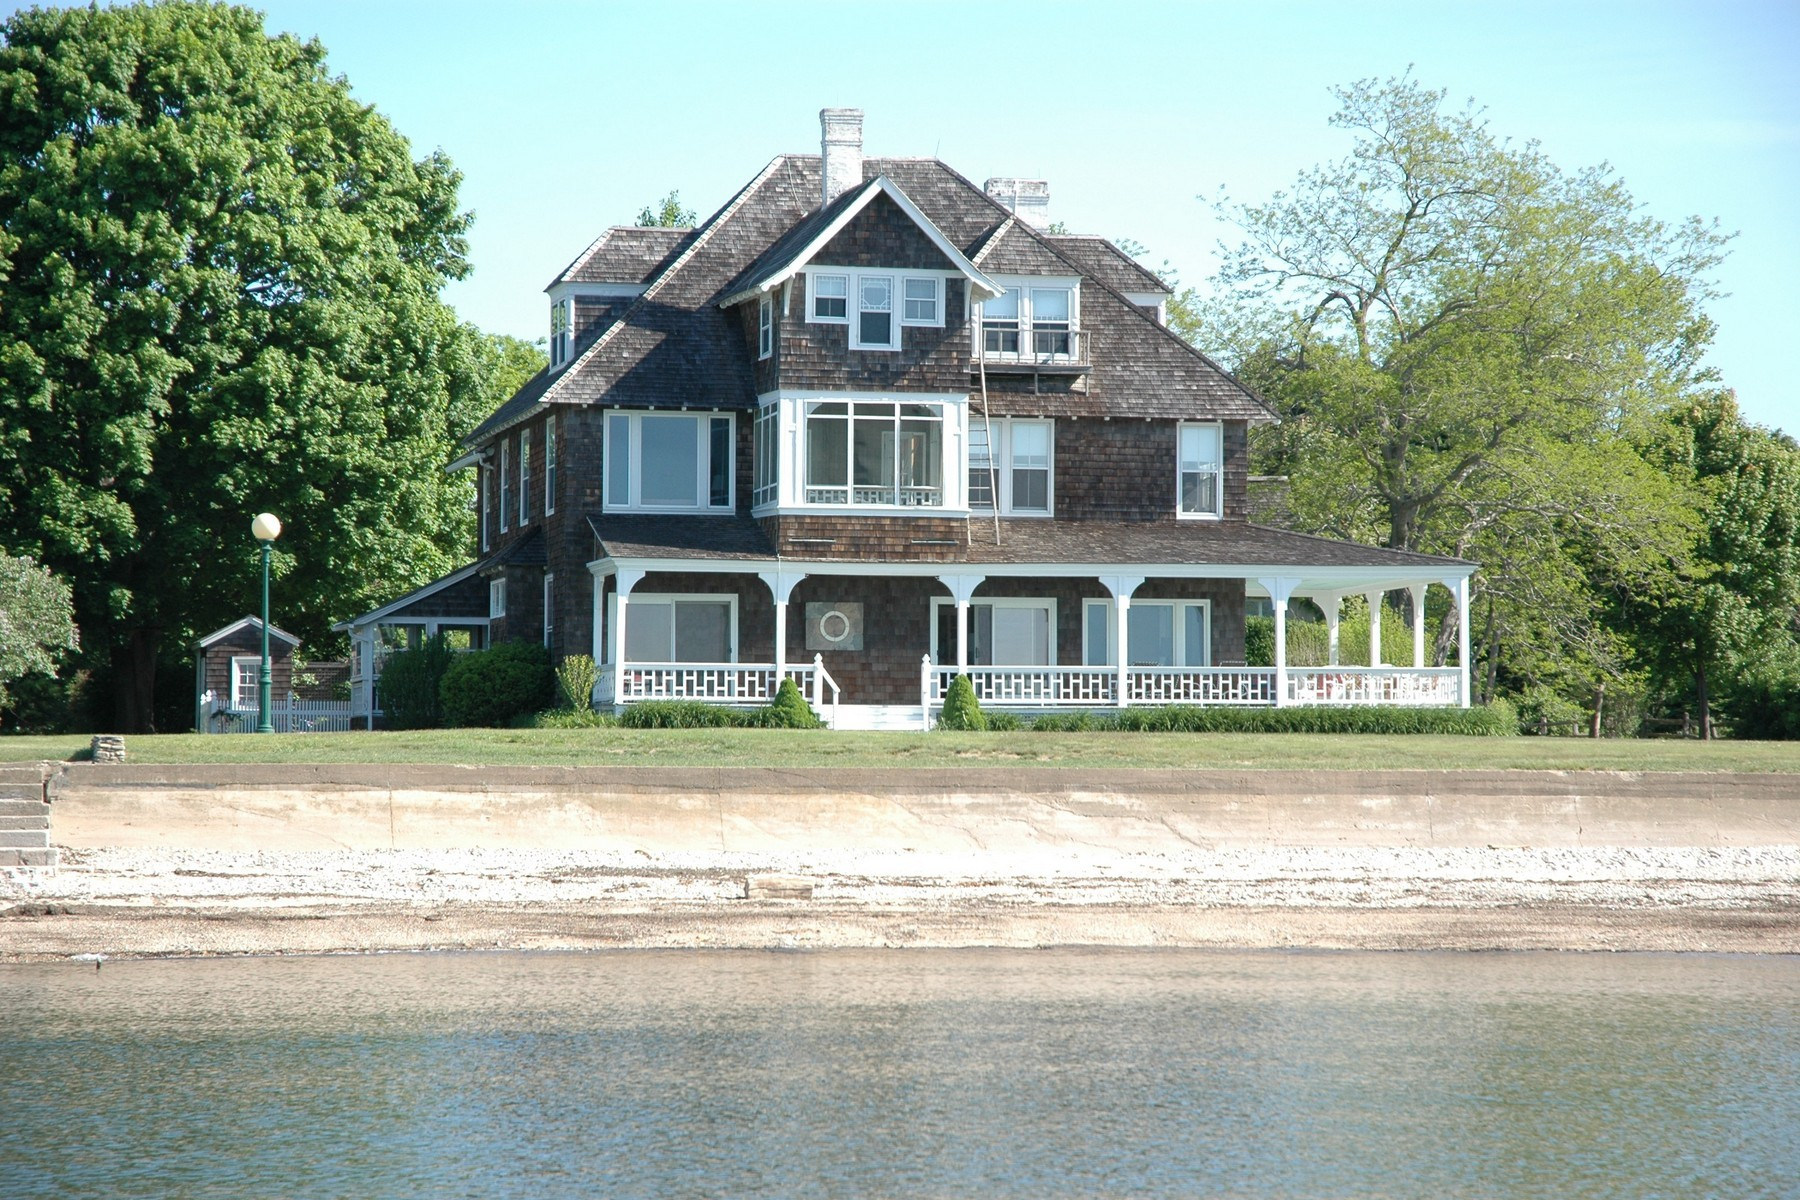 Single Family Home for Rent at Fabulous Fenwick Waterfront Rental 21 Pettipaug Avenue Old Saybrook, Connecticut, 06475 United States